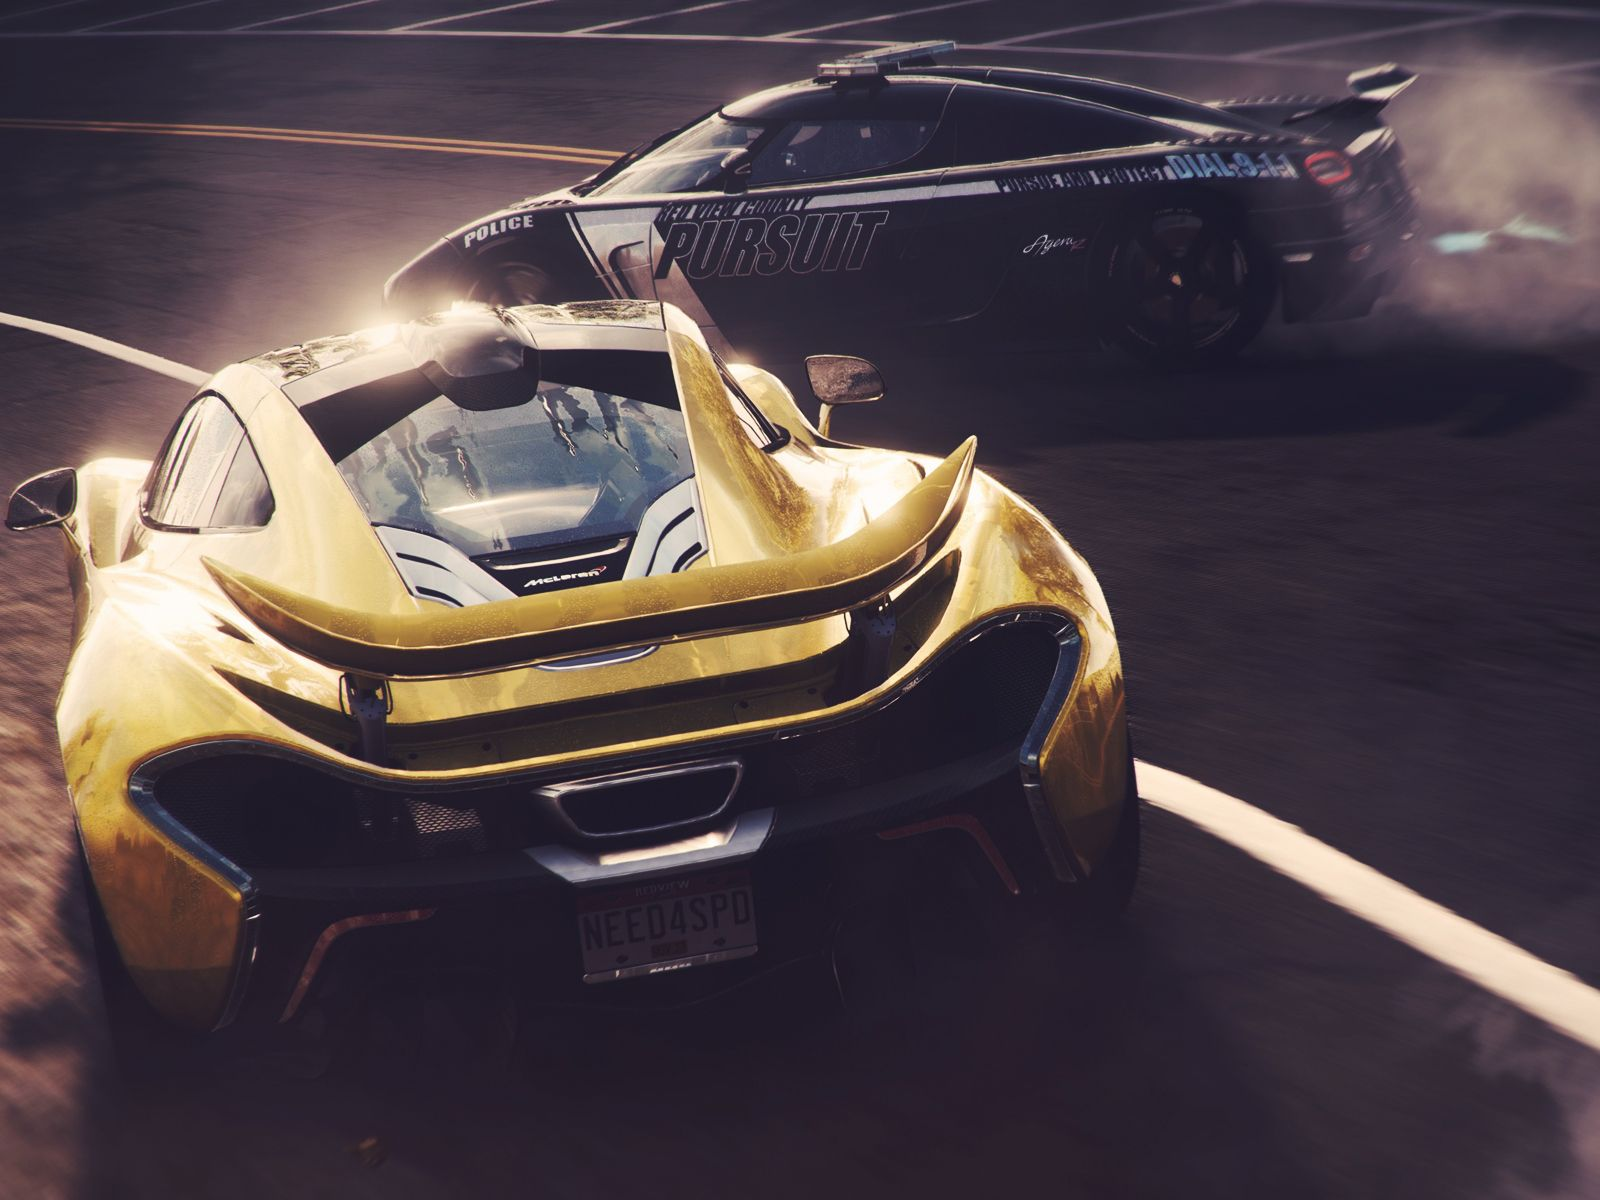 Mclaren Mclaren P1 Koenigsegg Koenigsegg Agera Need For Speed Rivals Need For Speed Game Video Games Agera R Cars Supercars Wallpaper Whxvqohecf Need For Speed Rivals Need For Speed Mclaren P1